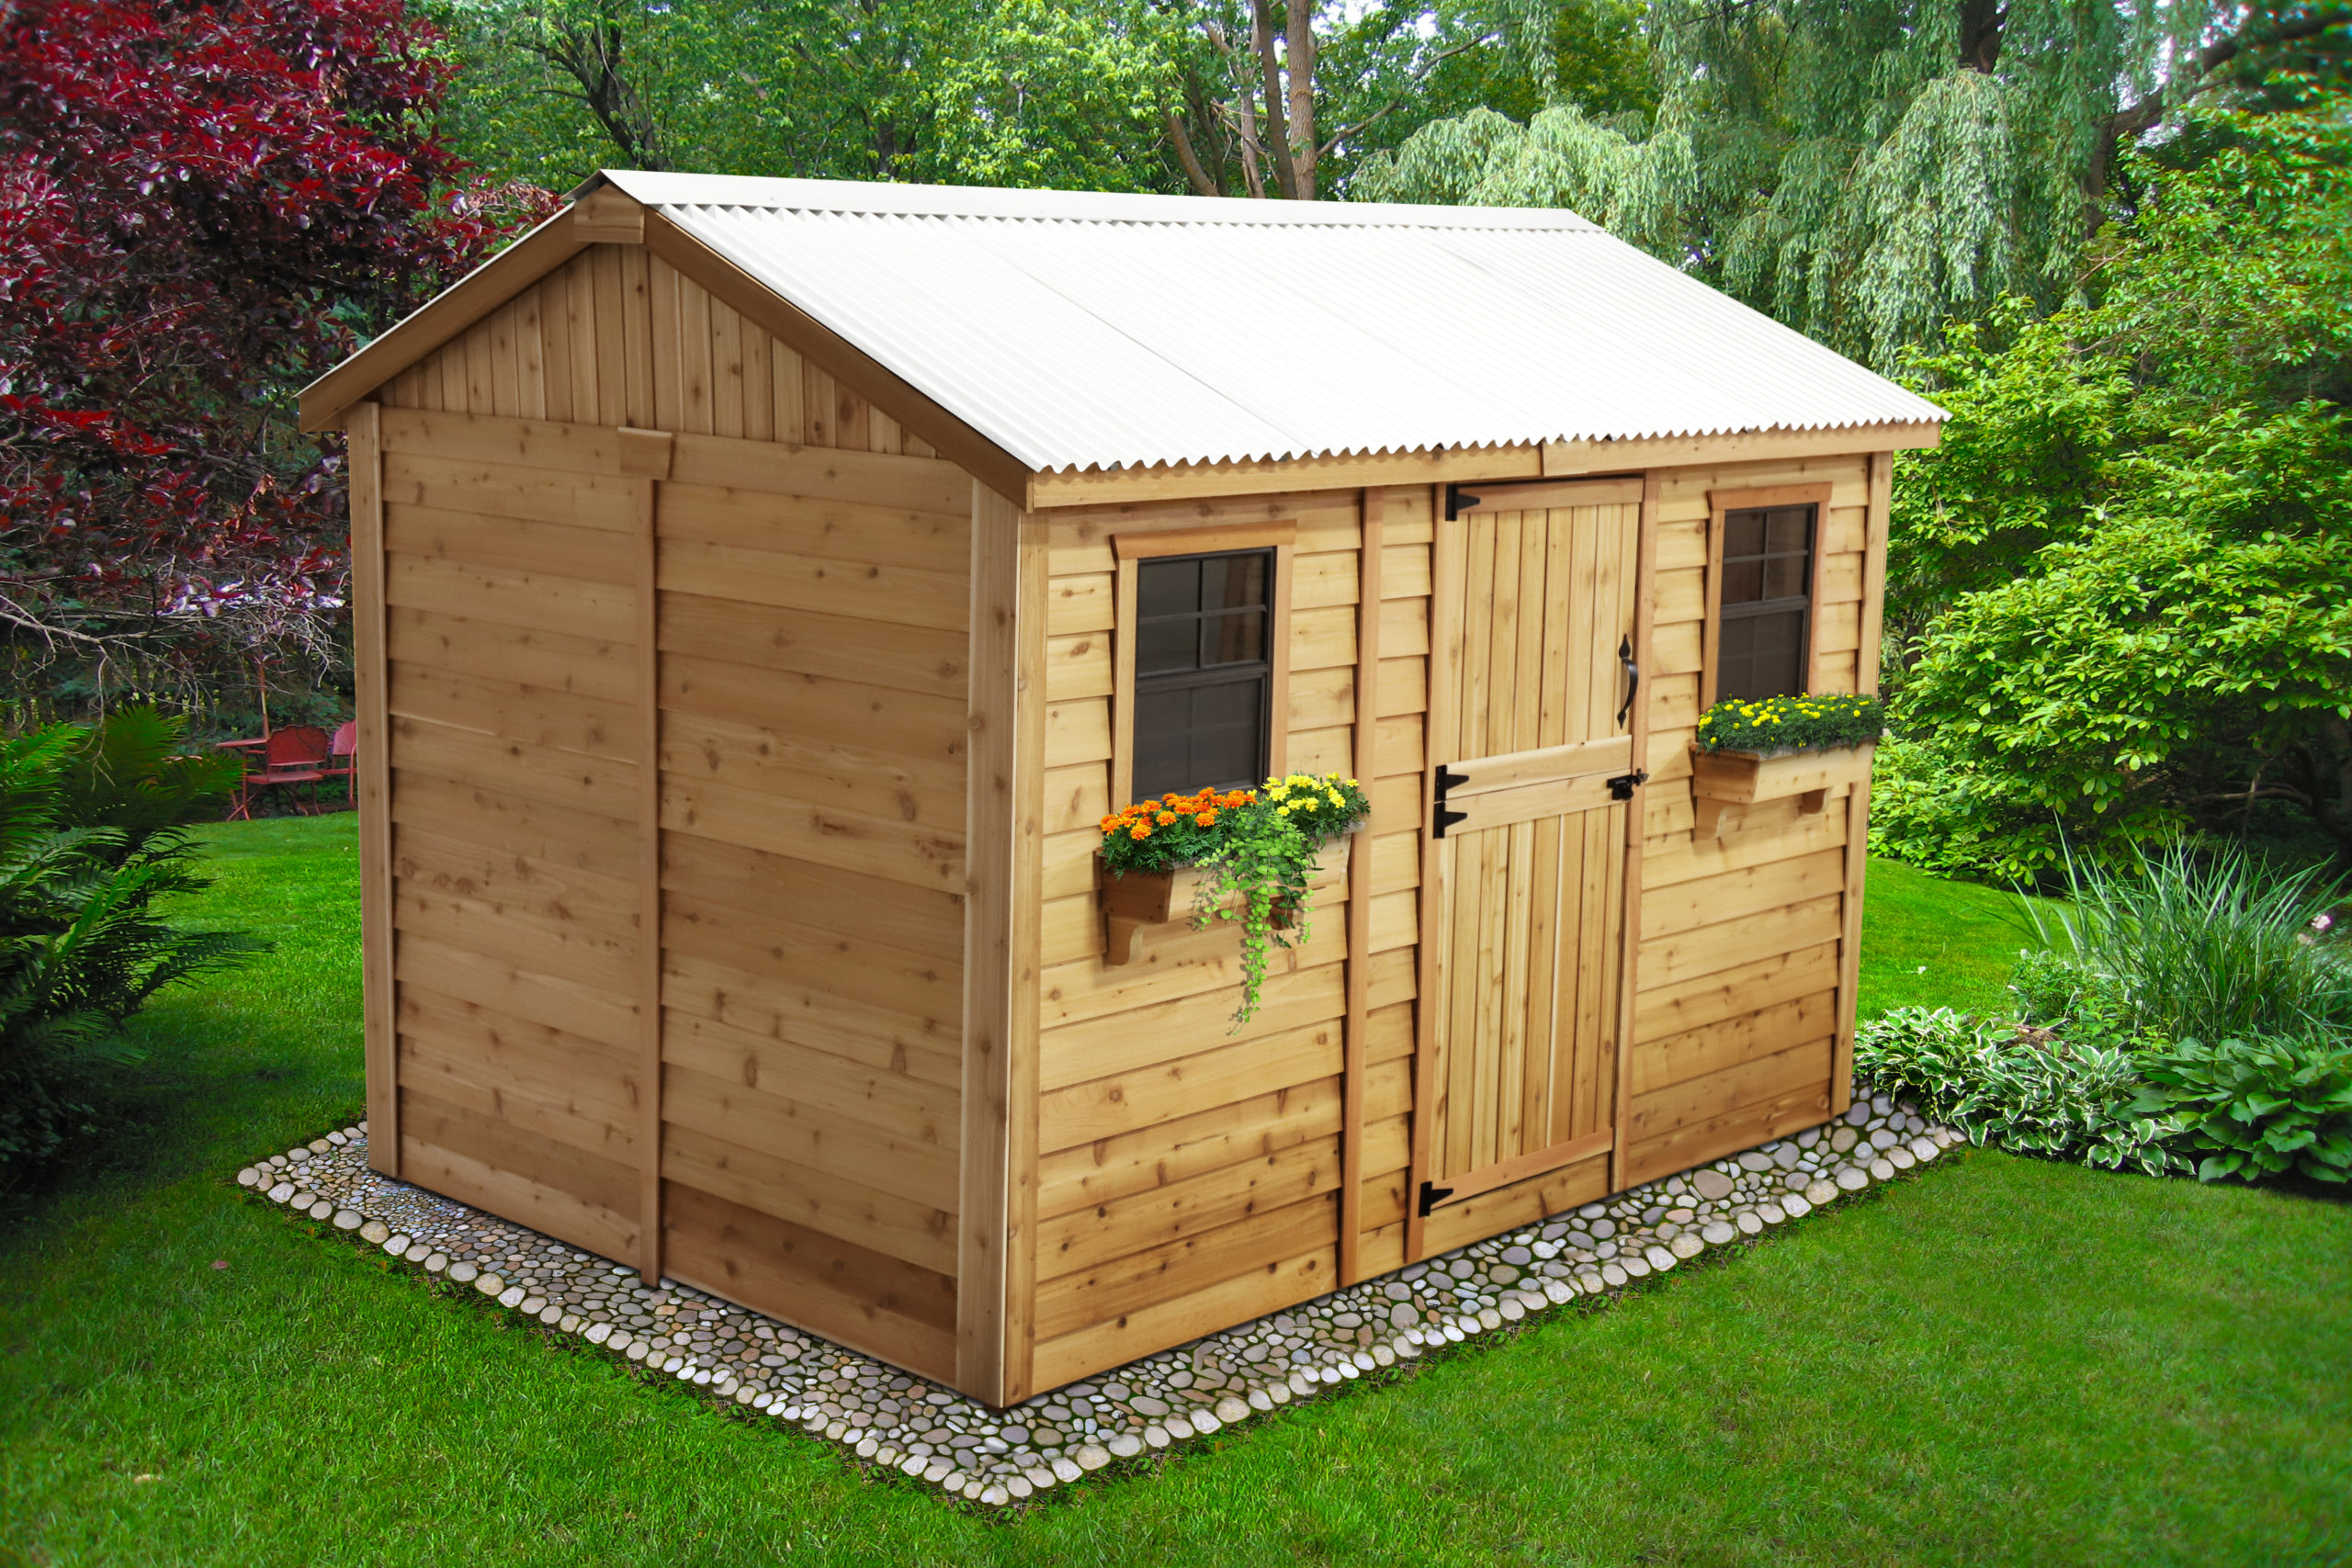 Large Shed for Storage   12x8 - Outdoor Living Today on Outdoor Living Today Cabana id=27294